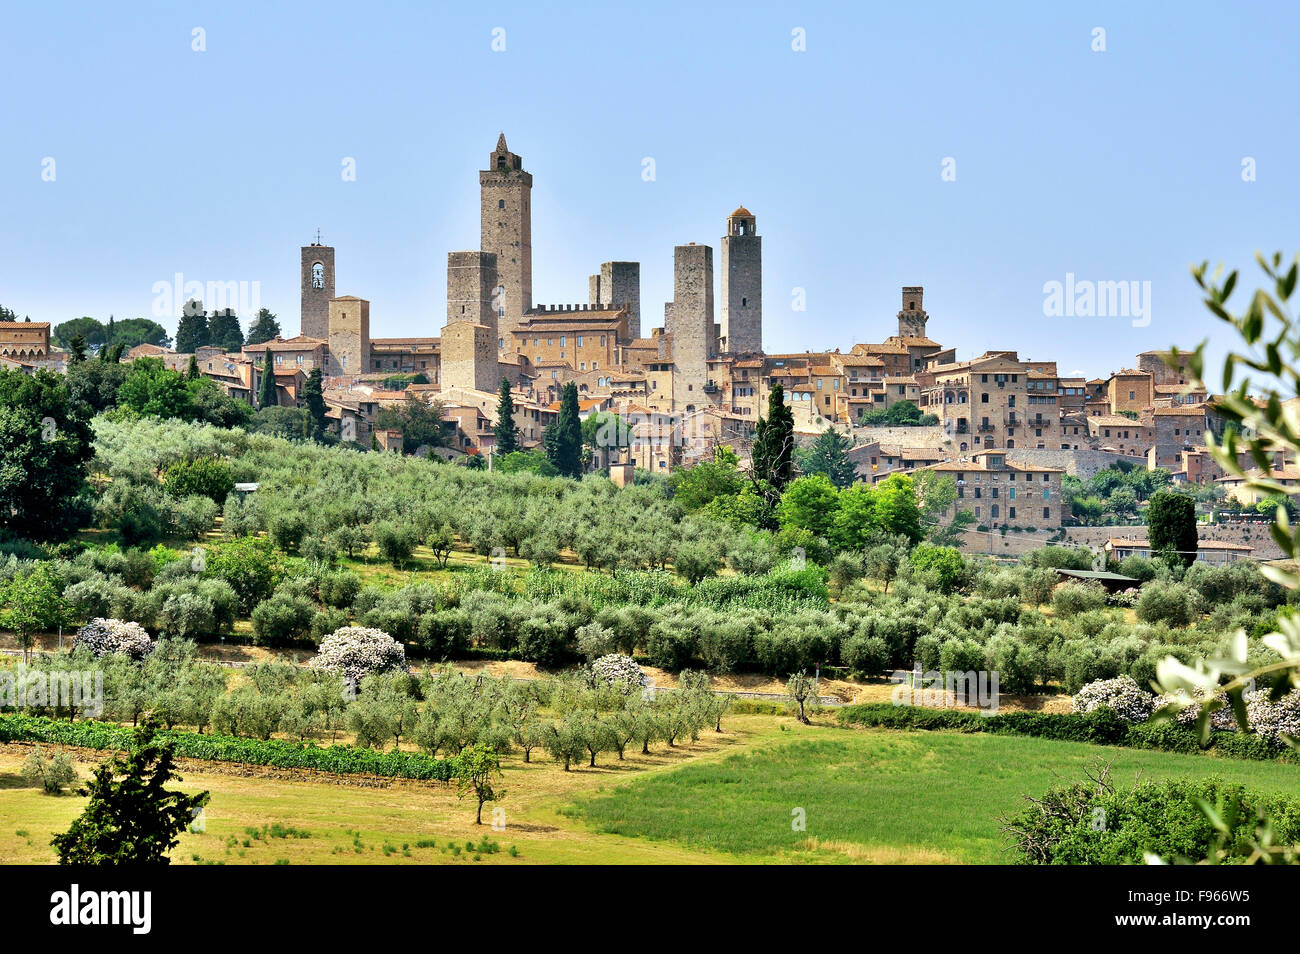 Skyline of San Gimignano, town and tower house of the Middle Ages, Tuscany,  Italy - Stock Image